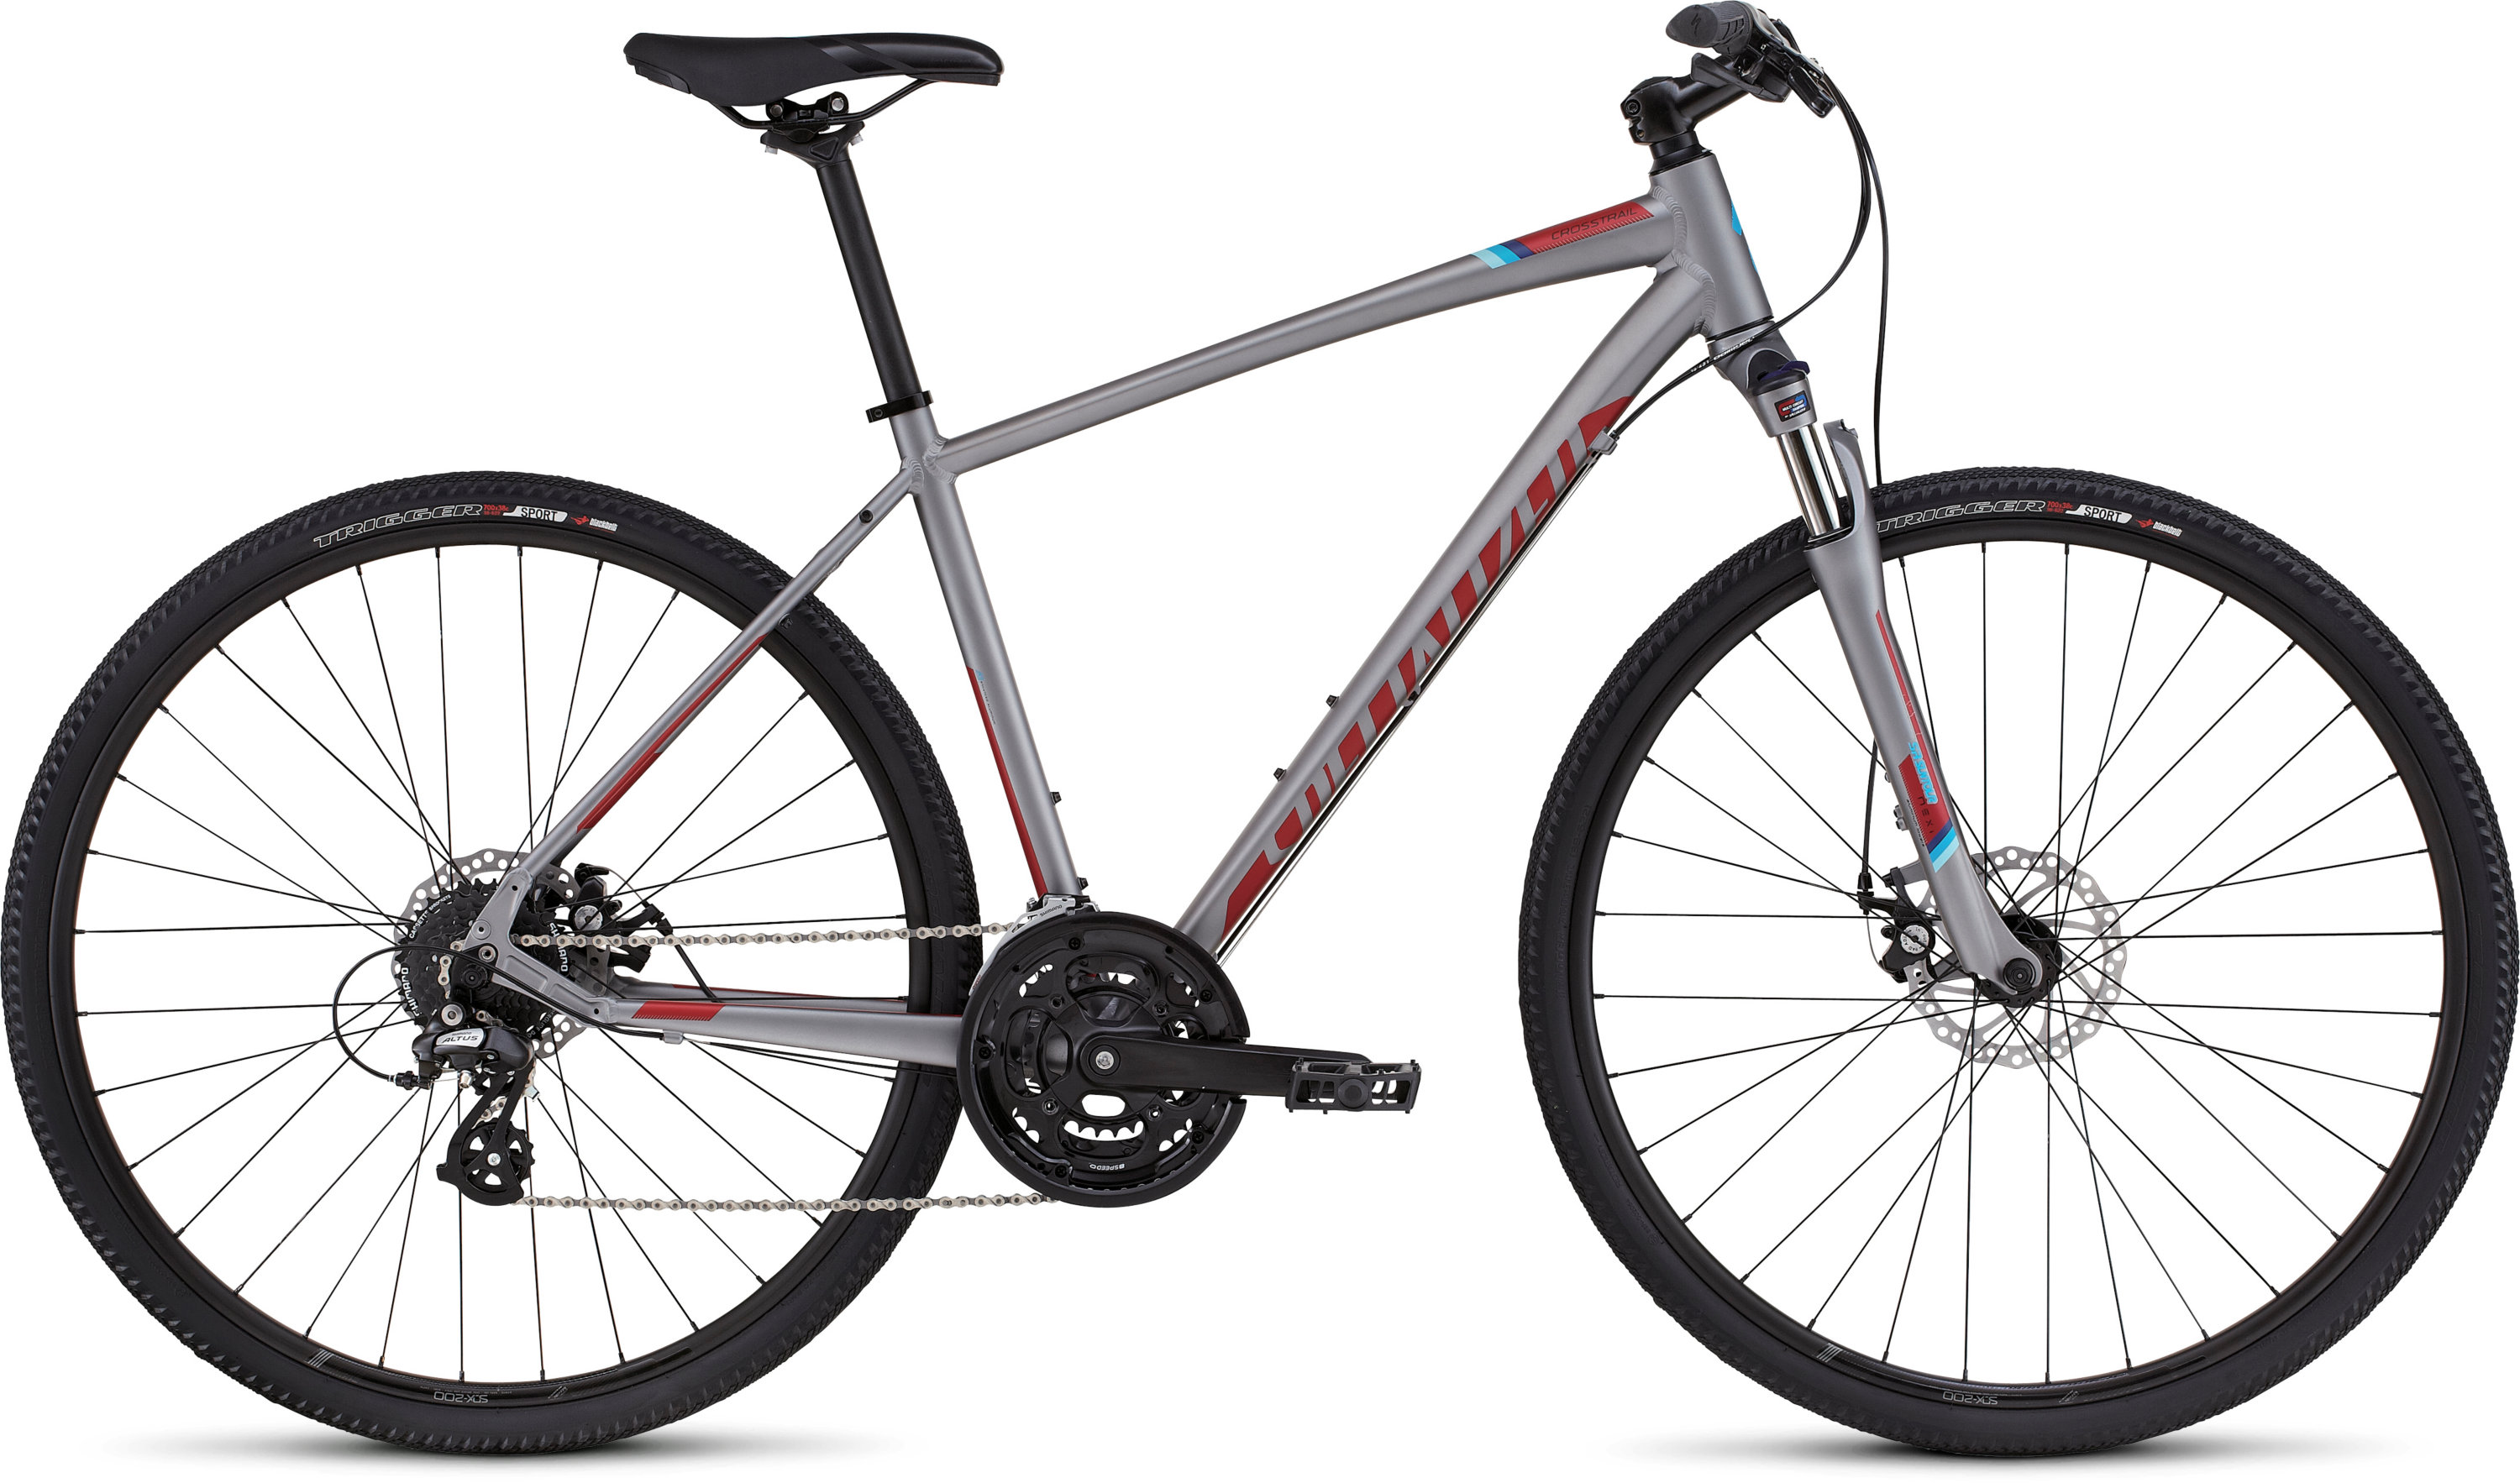 SPECIALIZED CT DISC STRL/CNDYRED/CYAN S - Bikedreams & Dustbikes